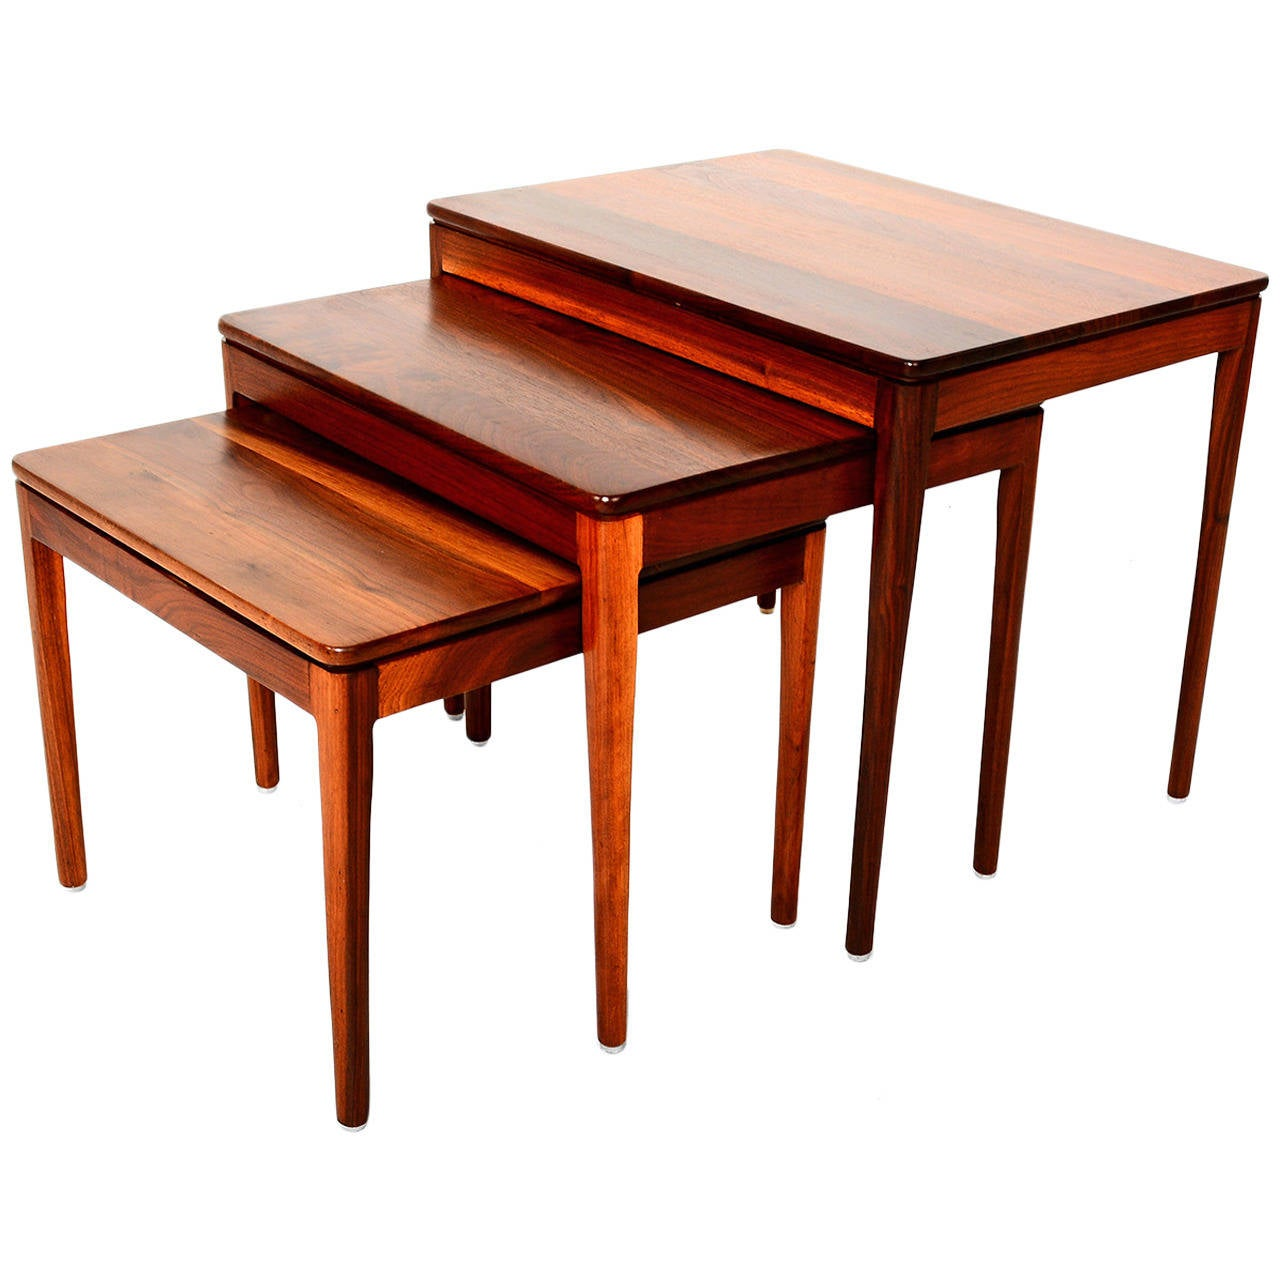 Kipp stewart for drexel walnut nesting tables at 1stdibs for Small stackable coffee tables